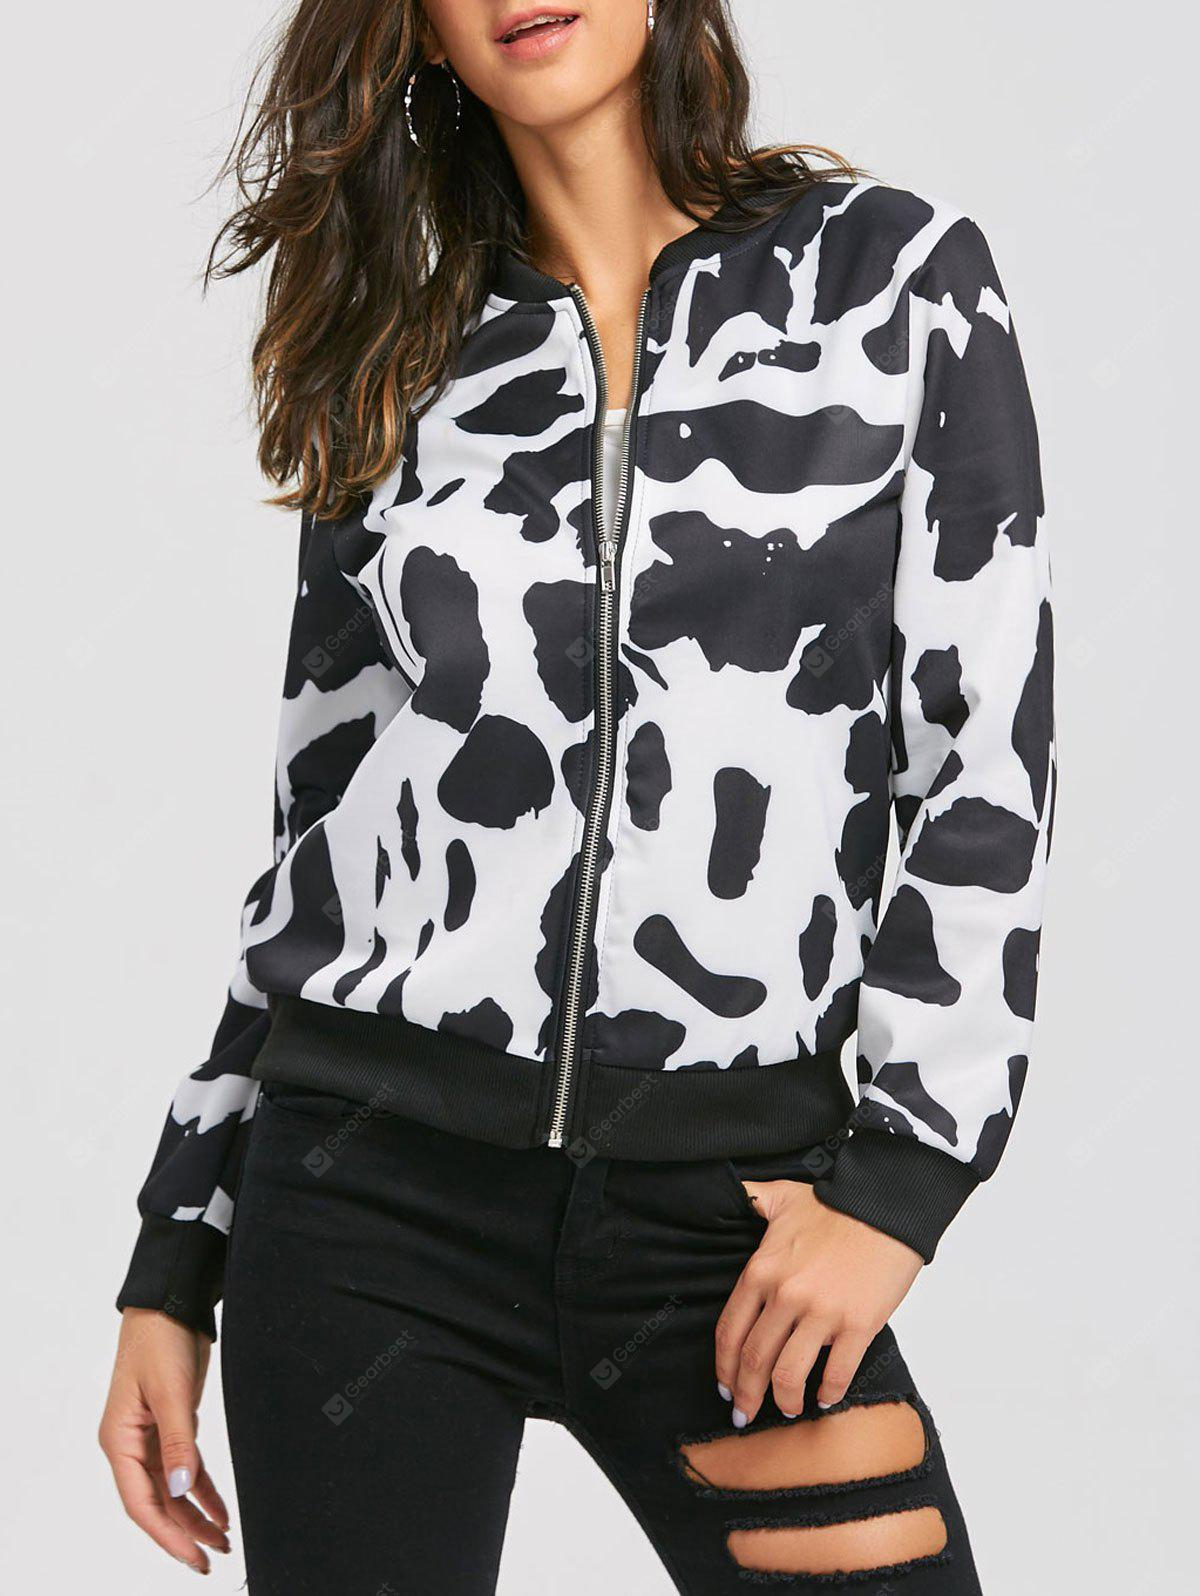 Zip Up Milk Cow Print Bomber Jacket